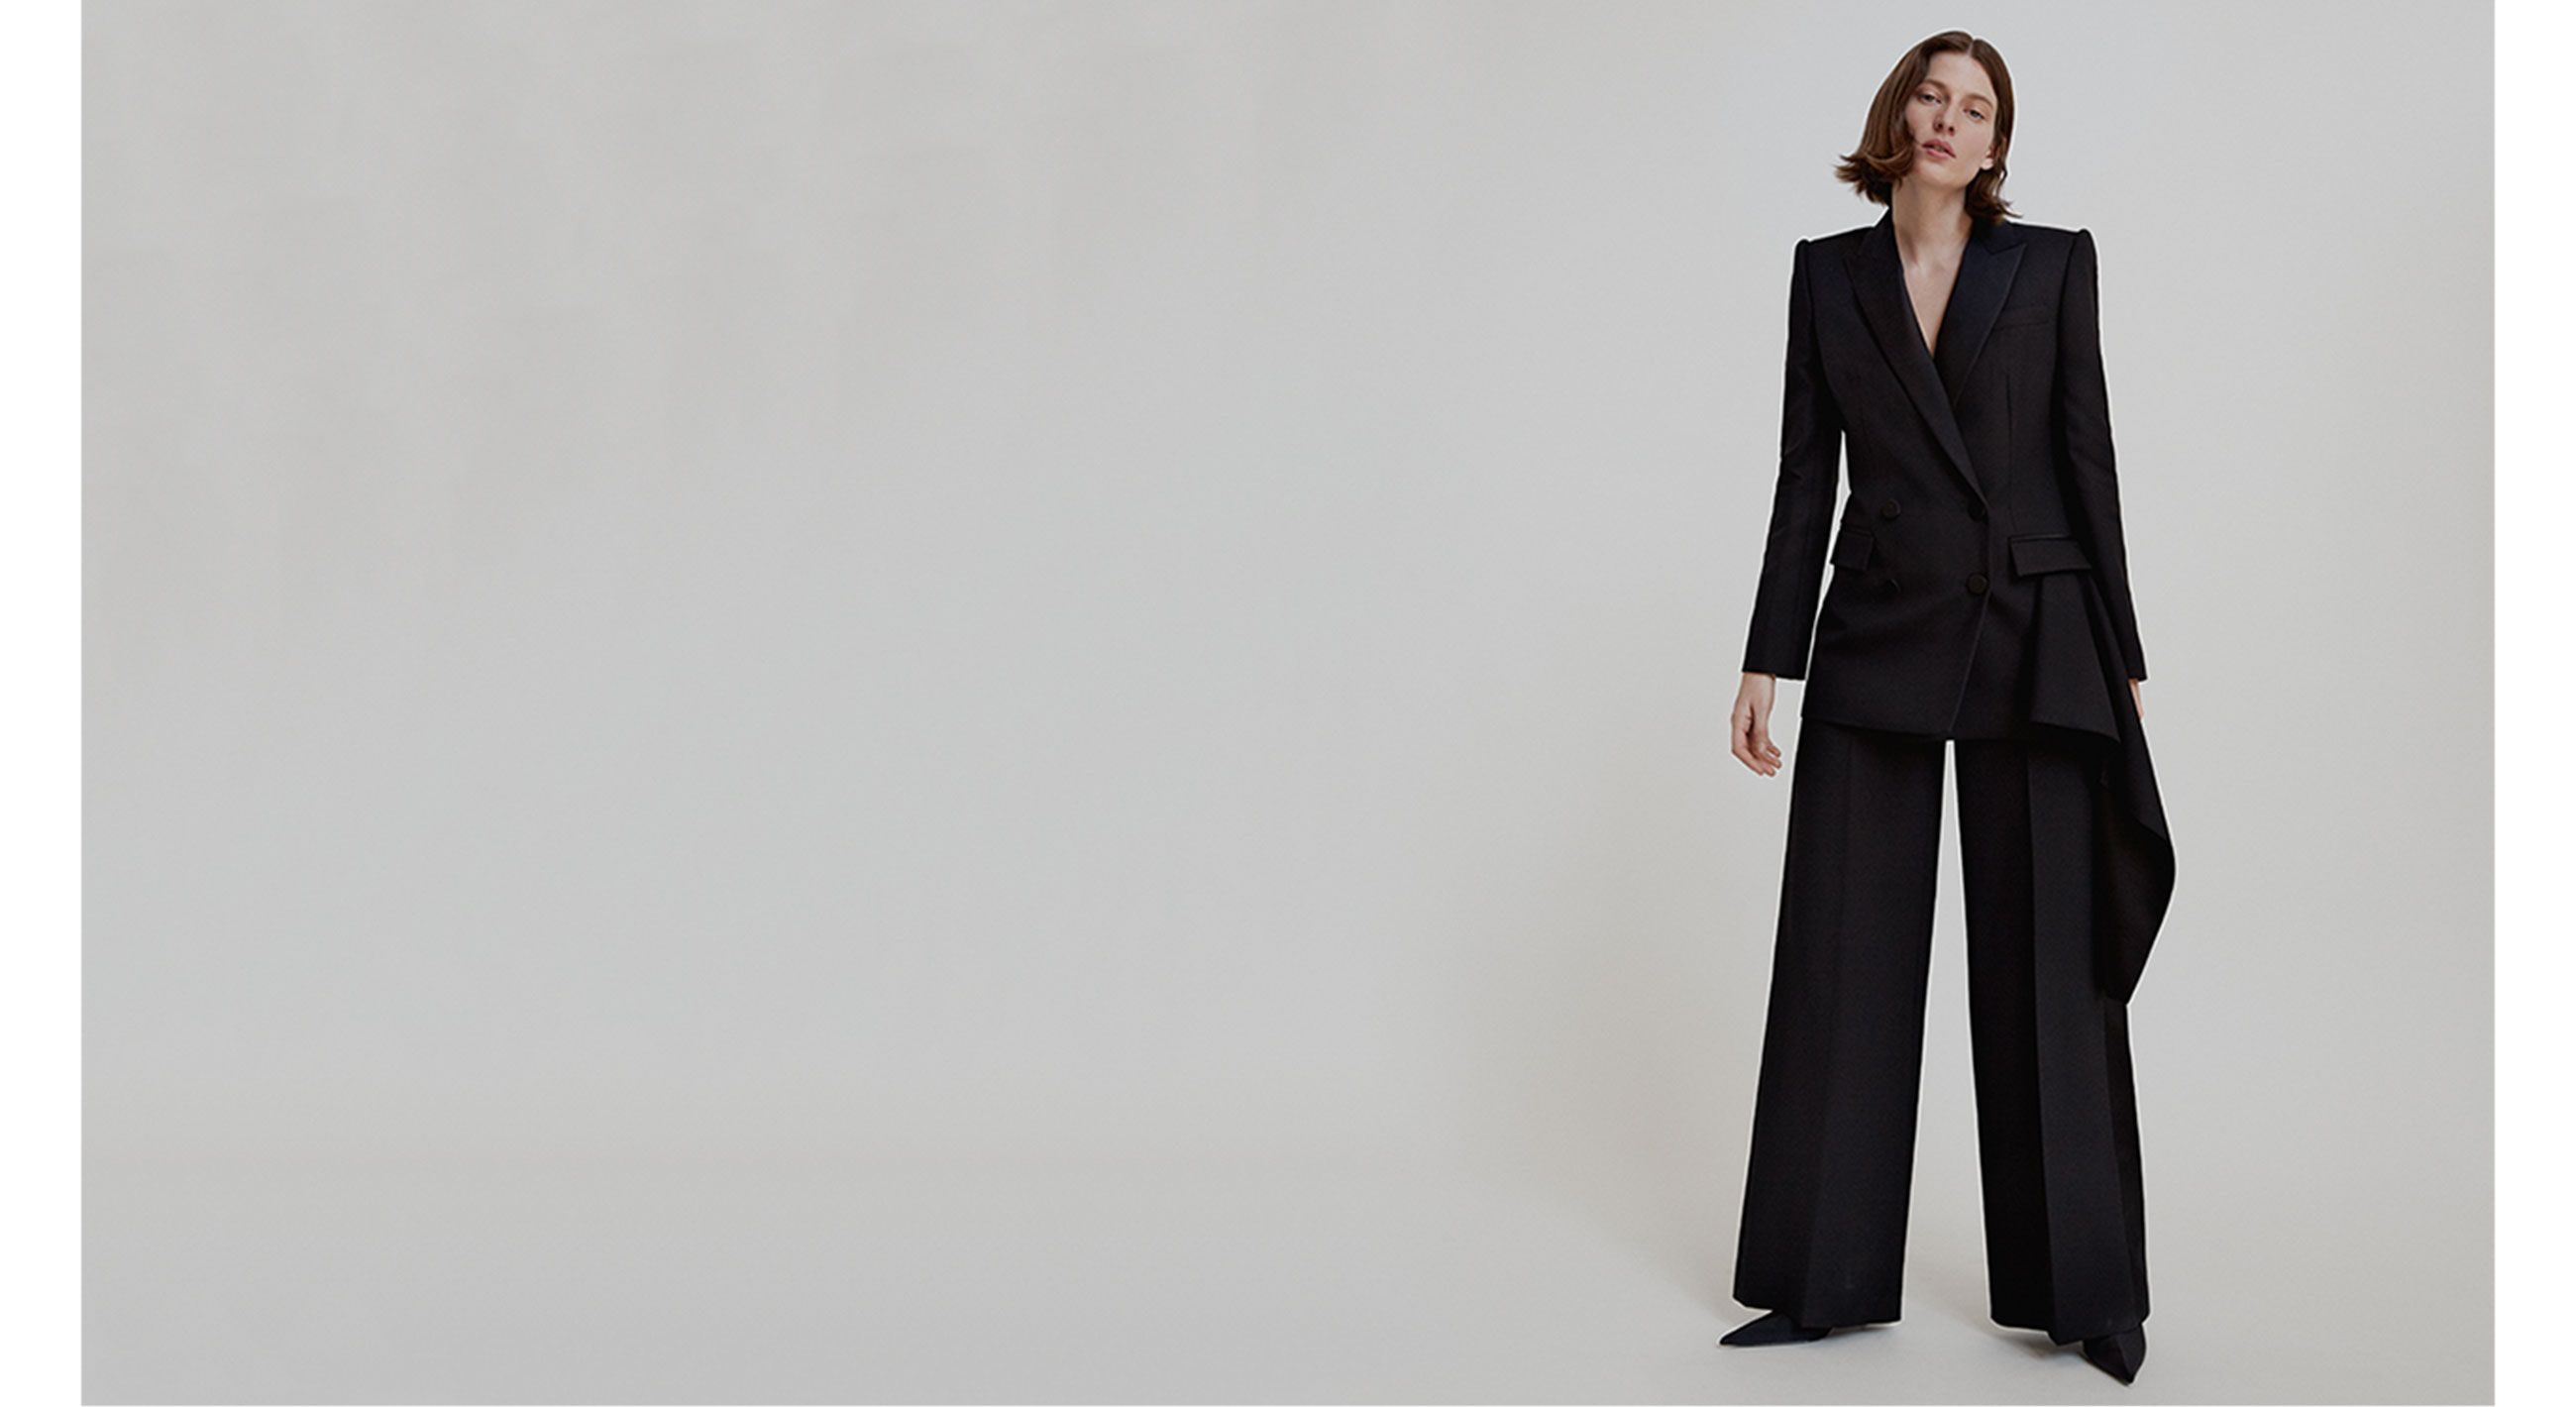 See how key labels have refreshed their greatest hits in our shoot, from smart tailoring by Alexander McQueen to Halpern's sequins and Chloé's new silhouettes.